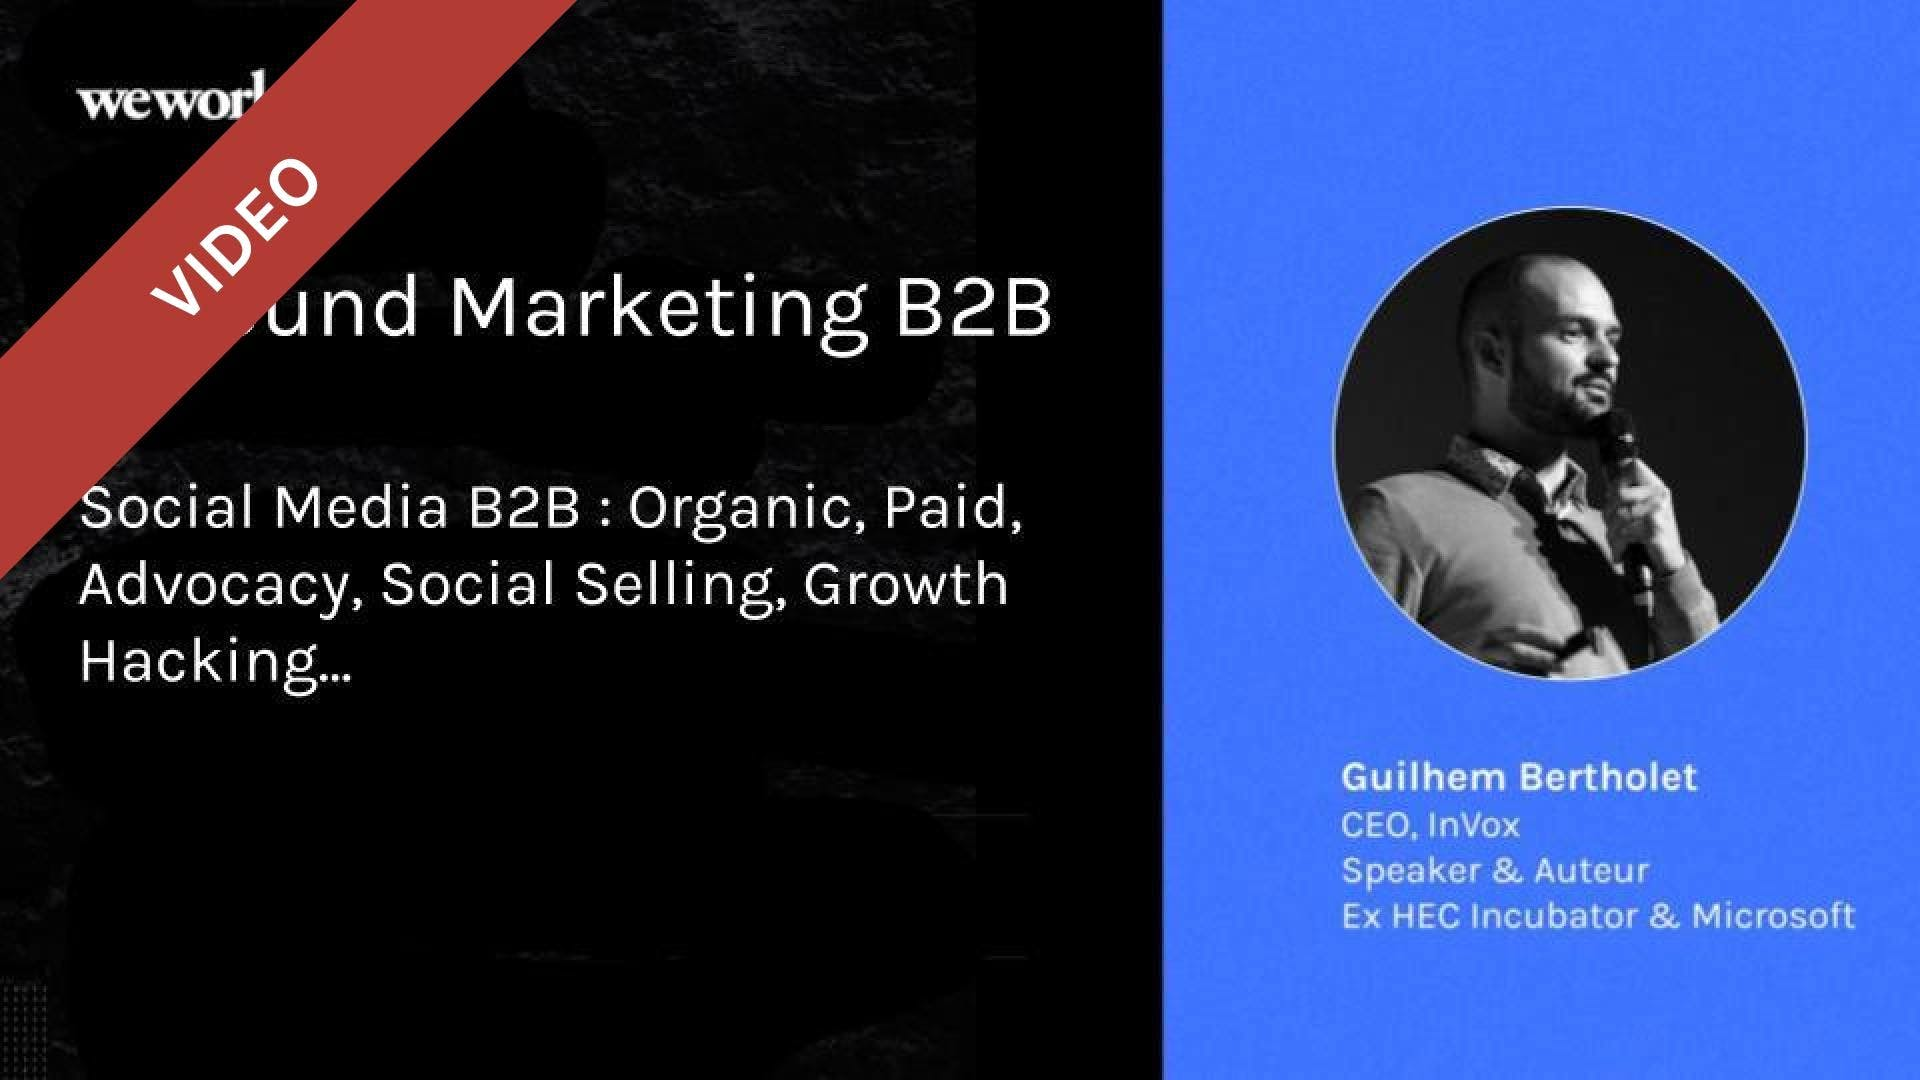 Inbound Marketing B2B - Social Media B2B : Organic, Paid, Advocacy, Social Selling, Growth Hacking...